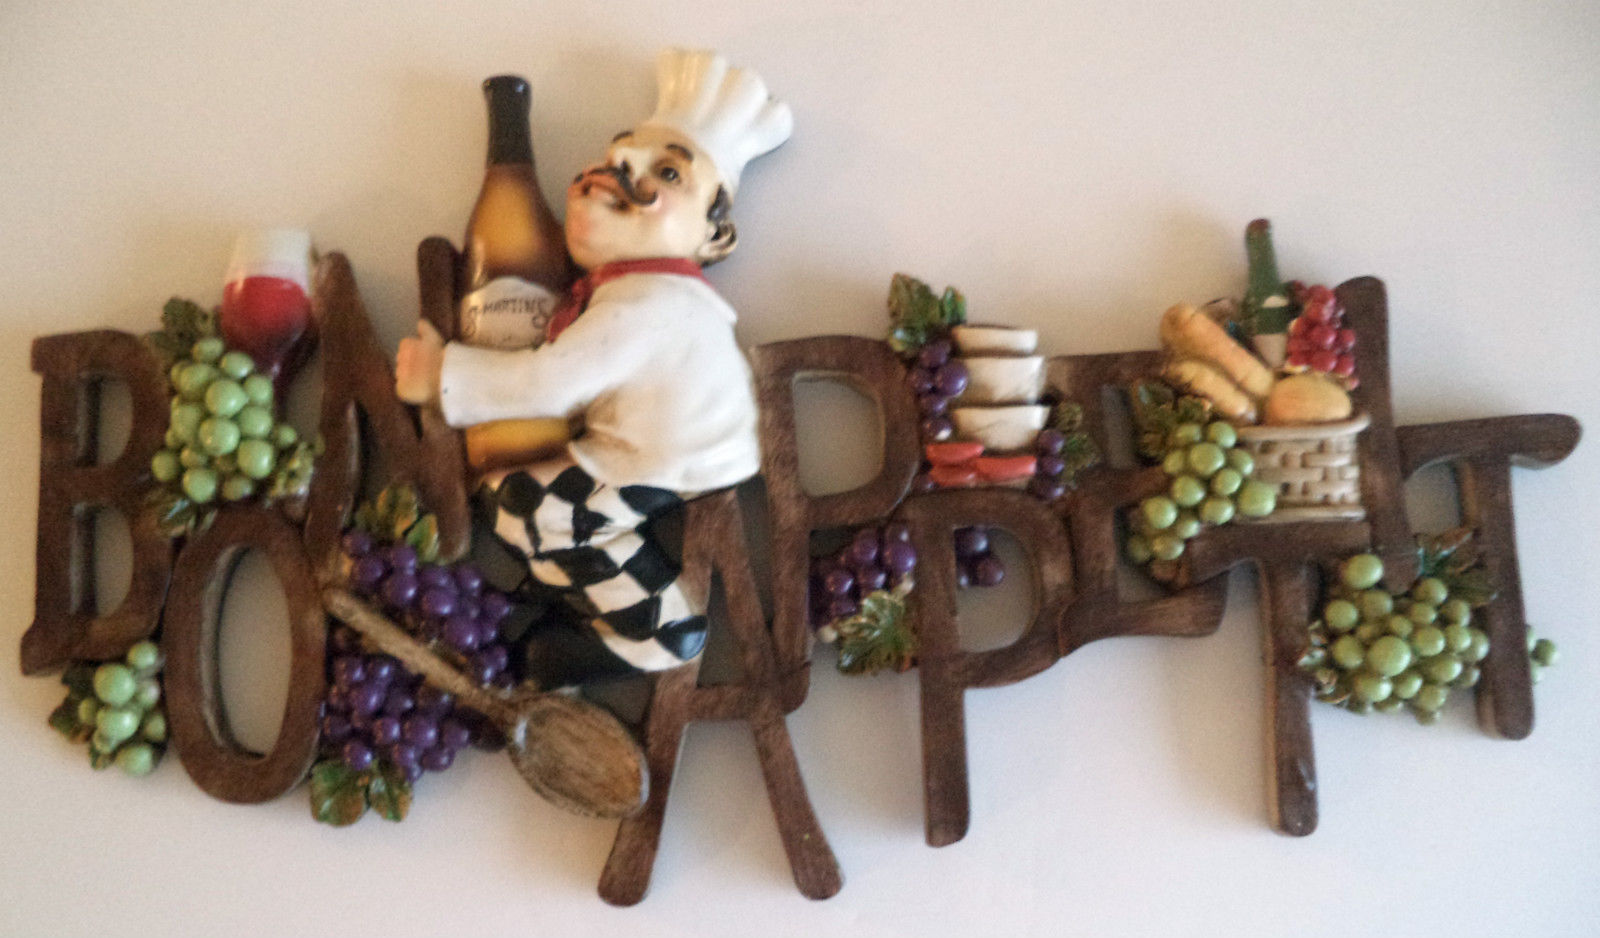 New Bon Appetit Wall Plaque Wine Bottles Grapes Wall Art